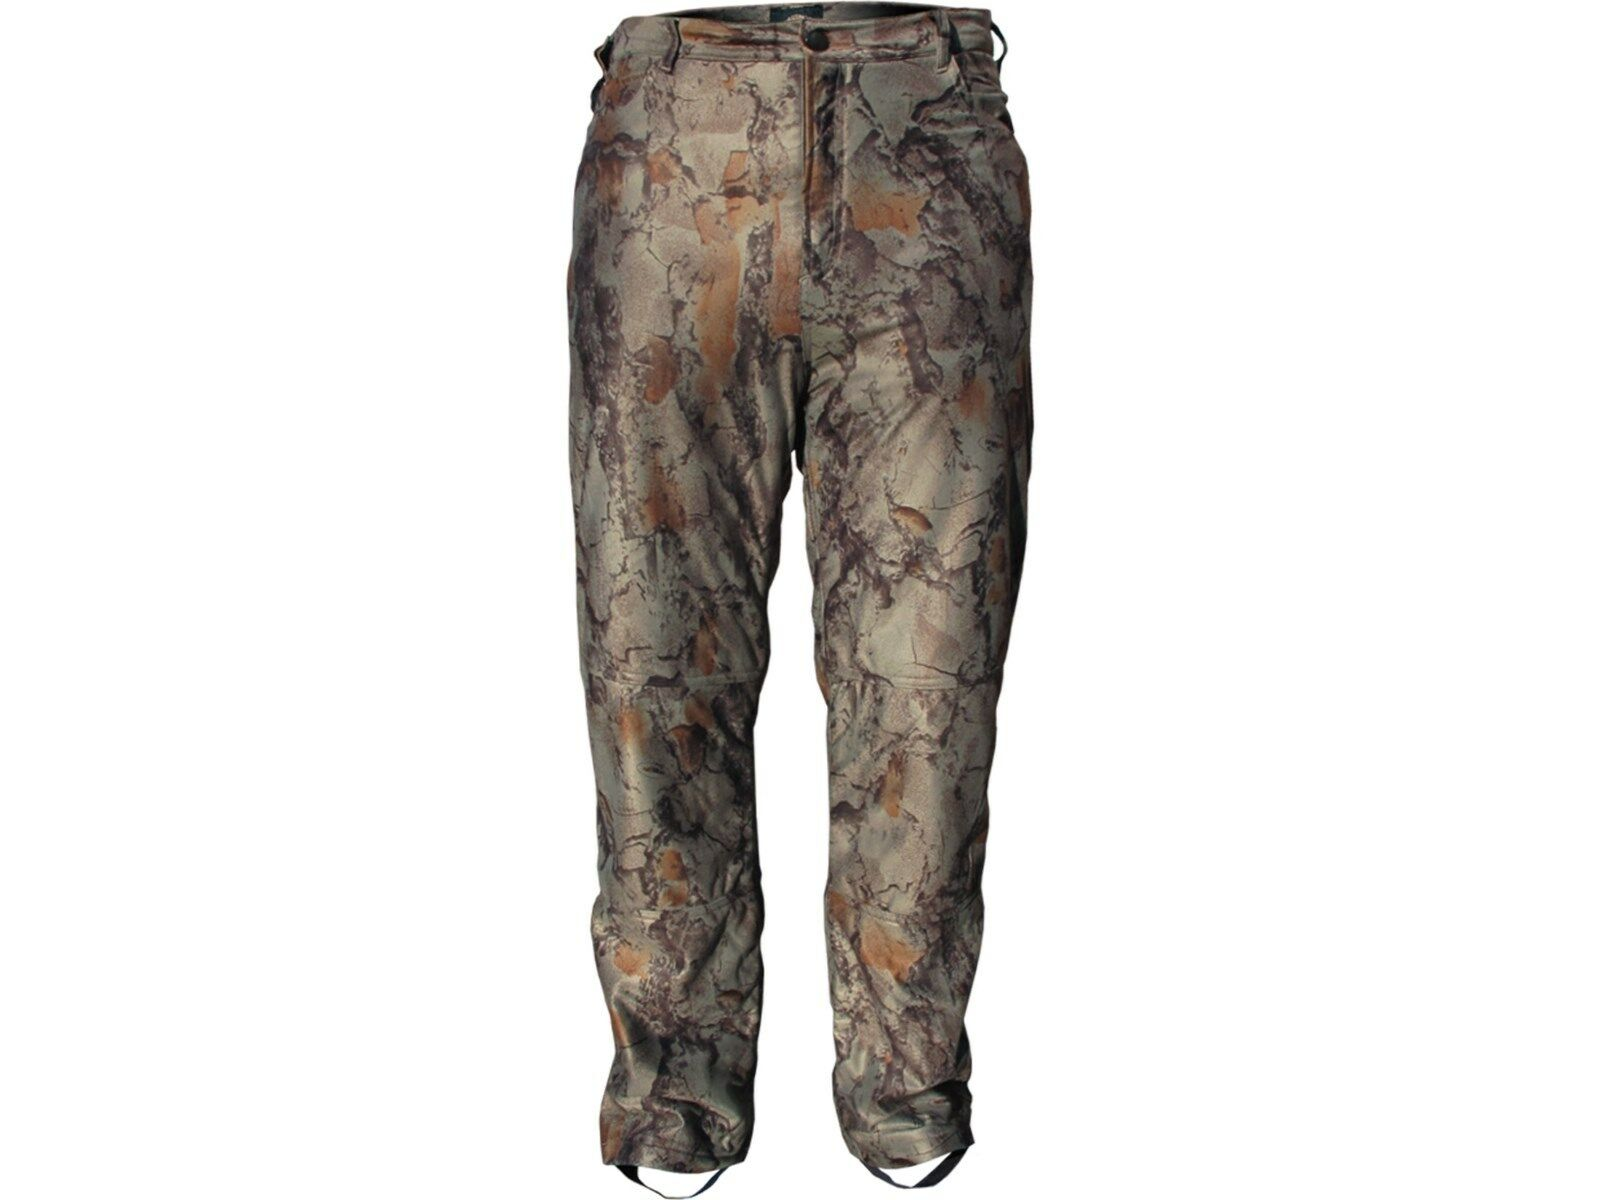 NATURAL GEAR Men's XL Waterfowl Fleece  Lined Wader Pants, Natural Camo 106-XL  low price